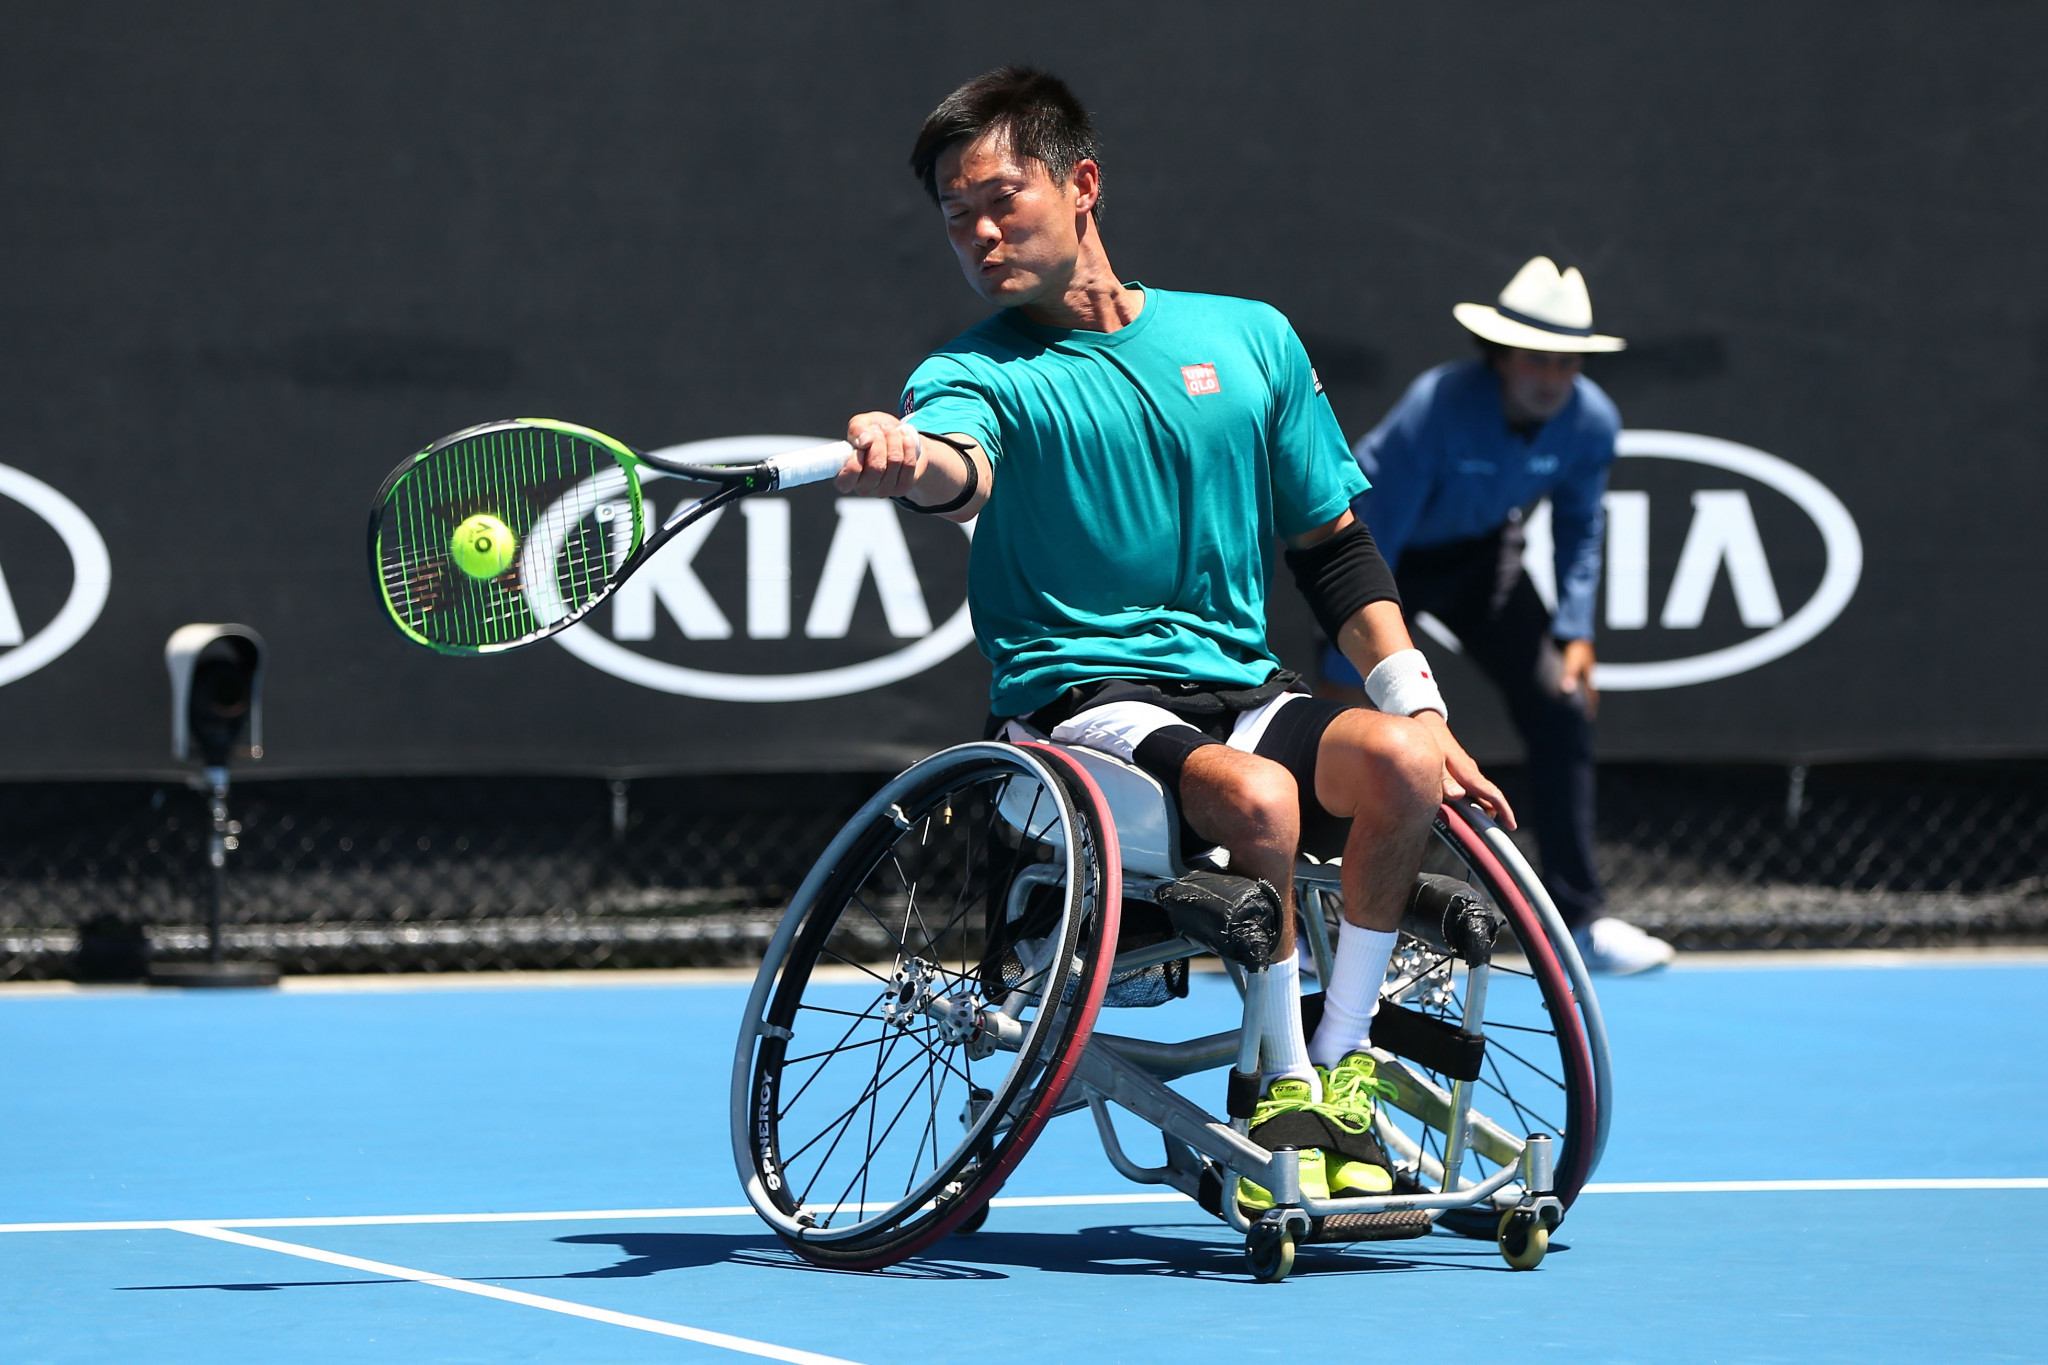 Kunieda and Fernandez ease into French Open wheelchair draw semis